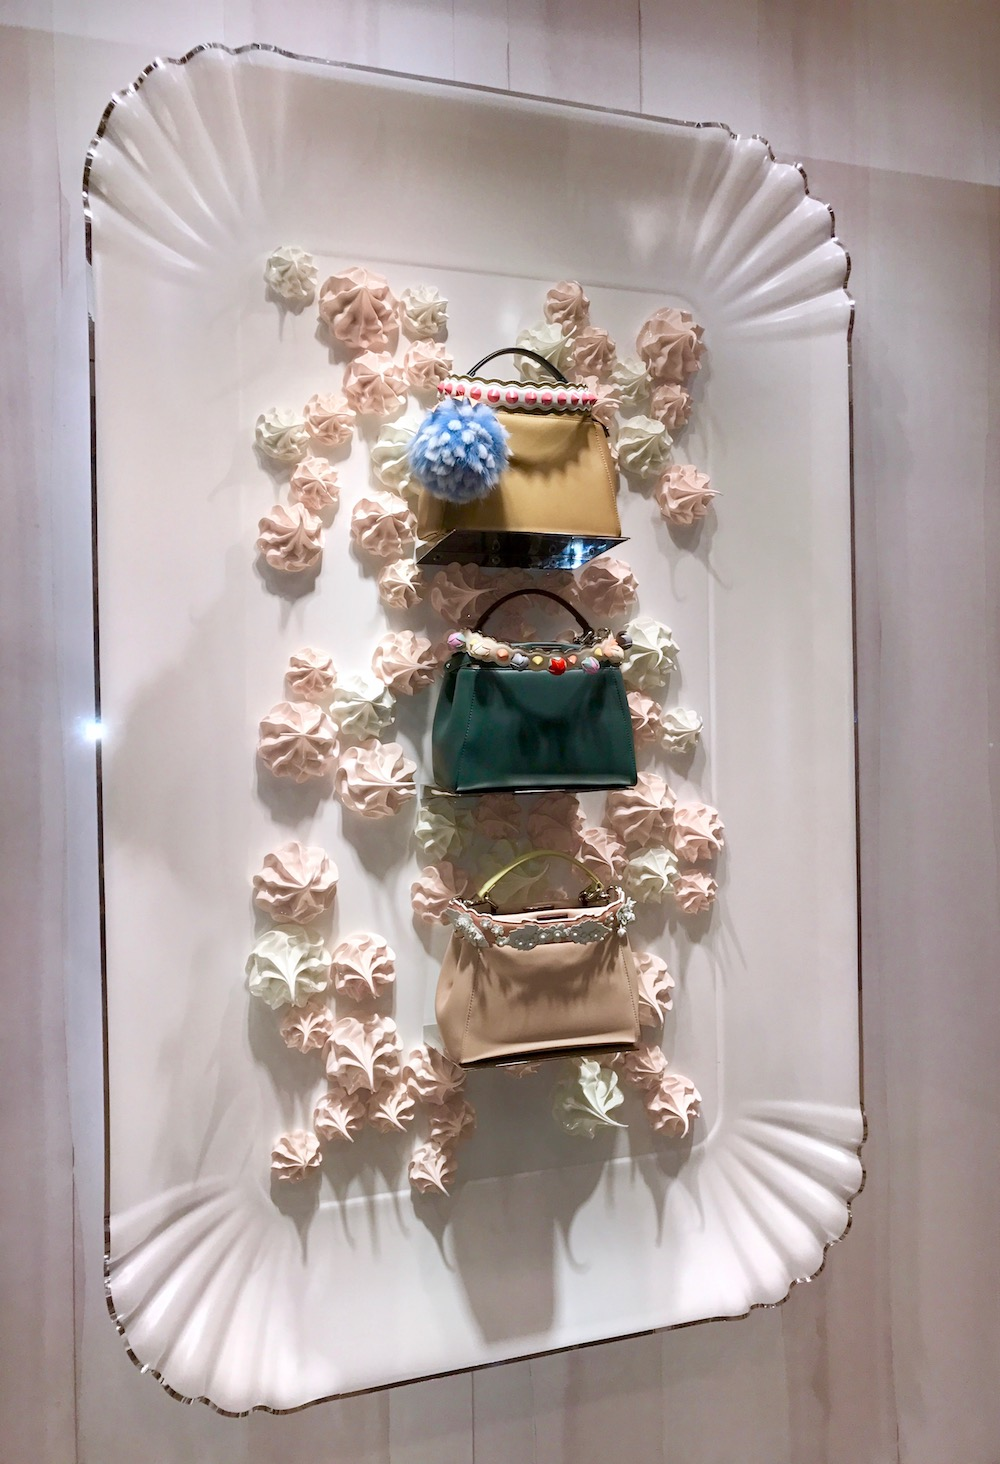 Fendi bags in shop window Orchard Singapore |curlytraveller.com